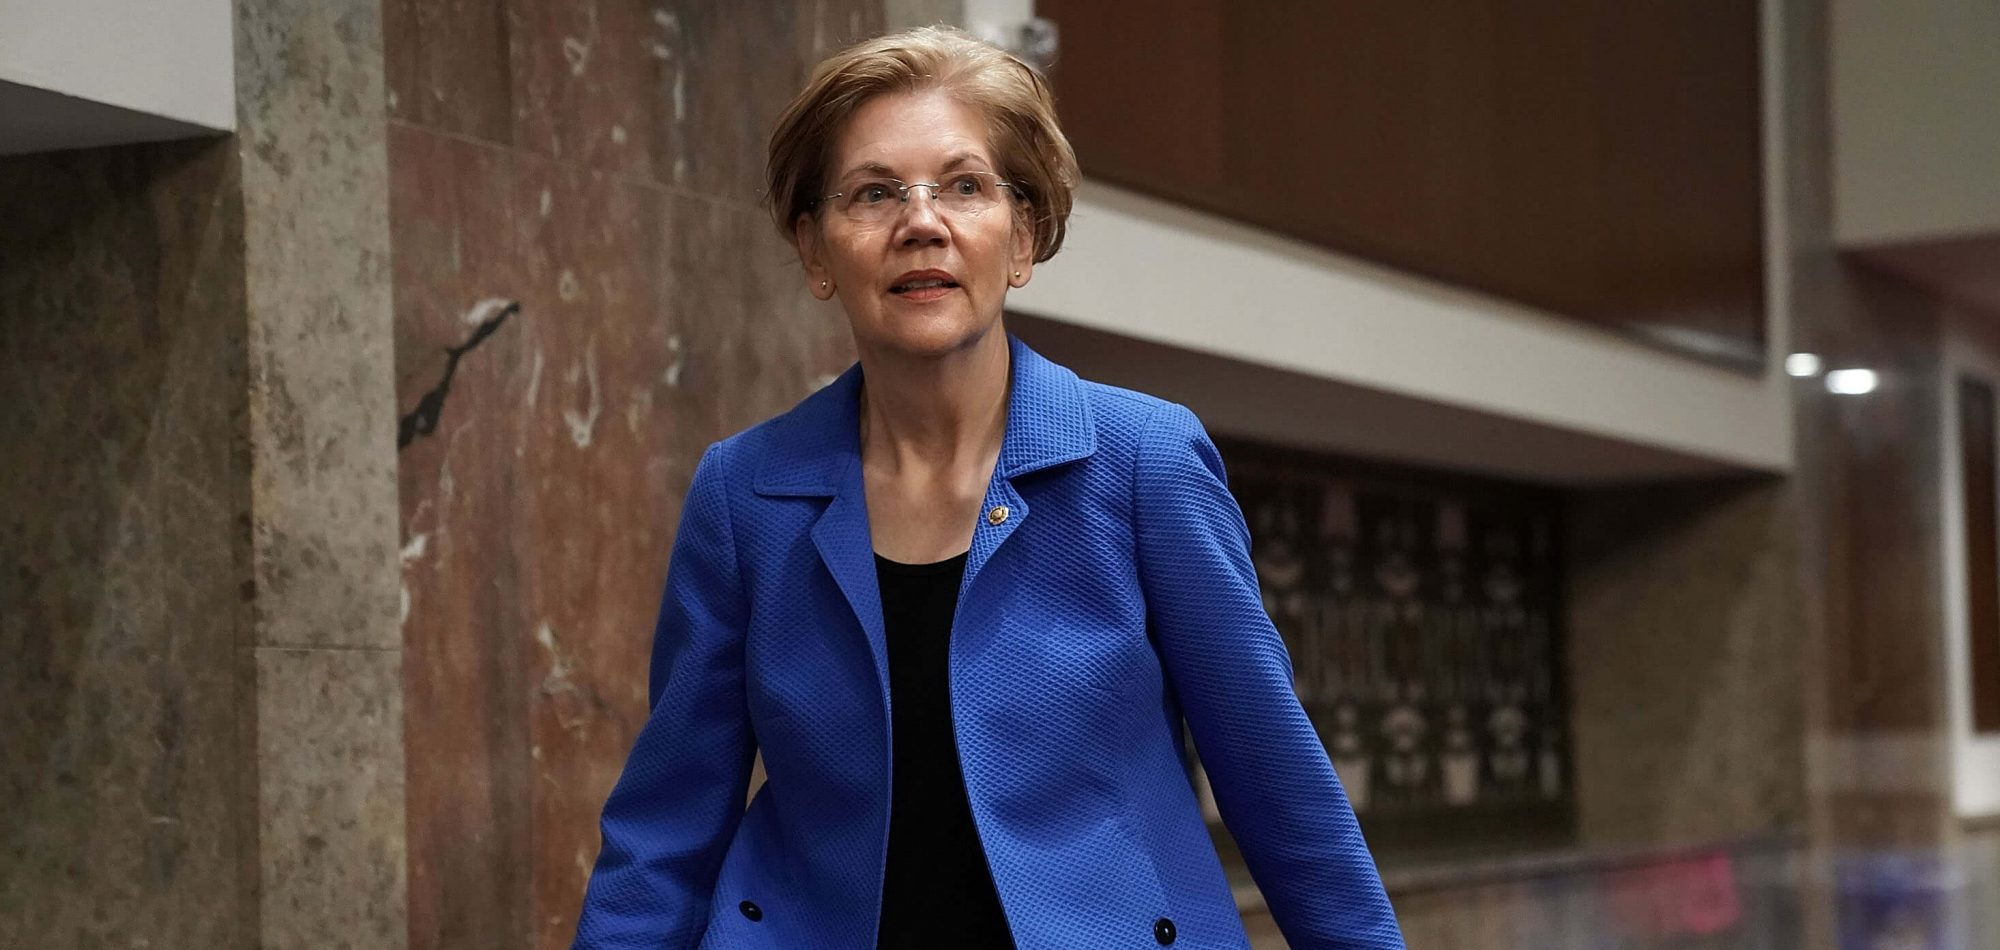 2020 Movers & Shakers, Special Edition: Warren Jumps In